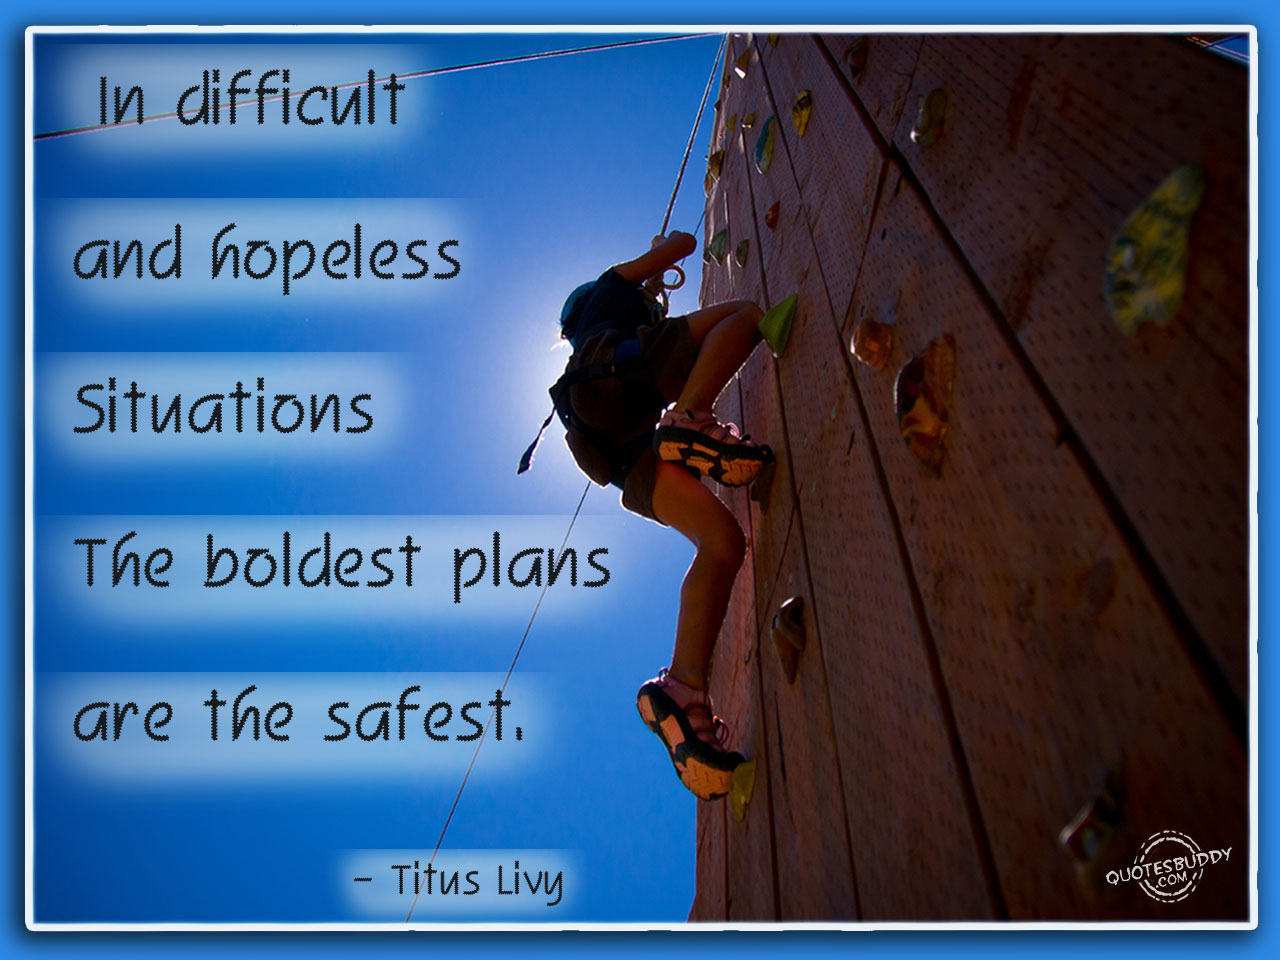 In difficult situations boldest plans are the safest. Titus Livy